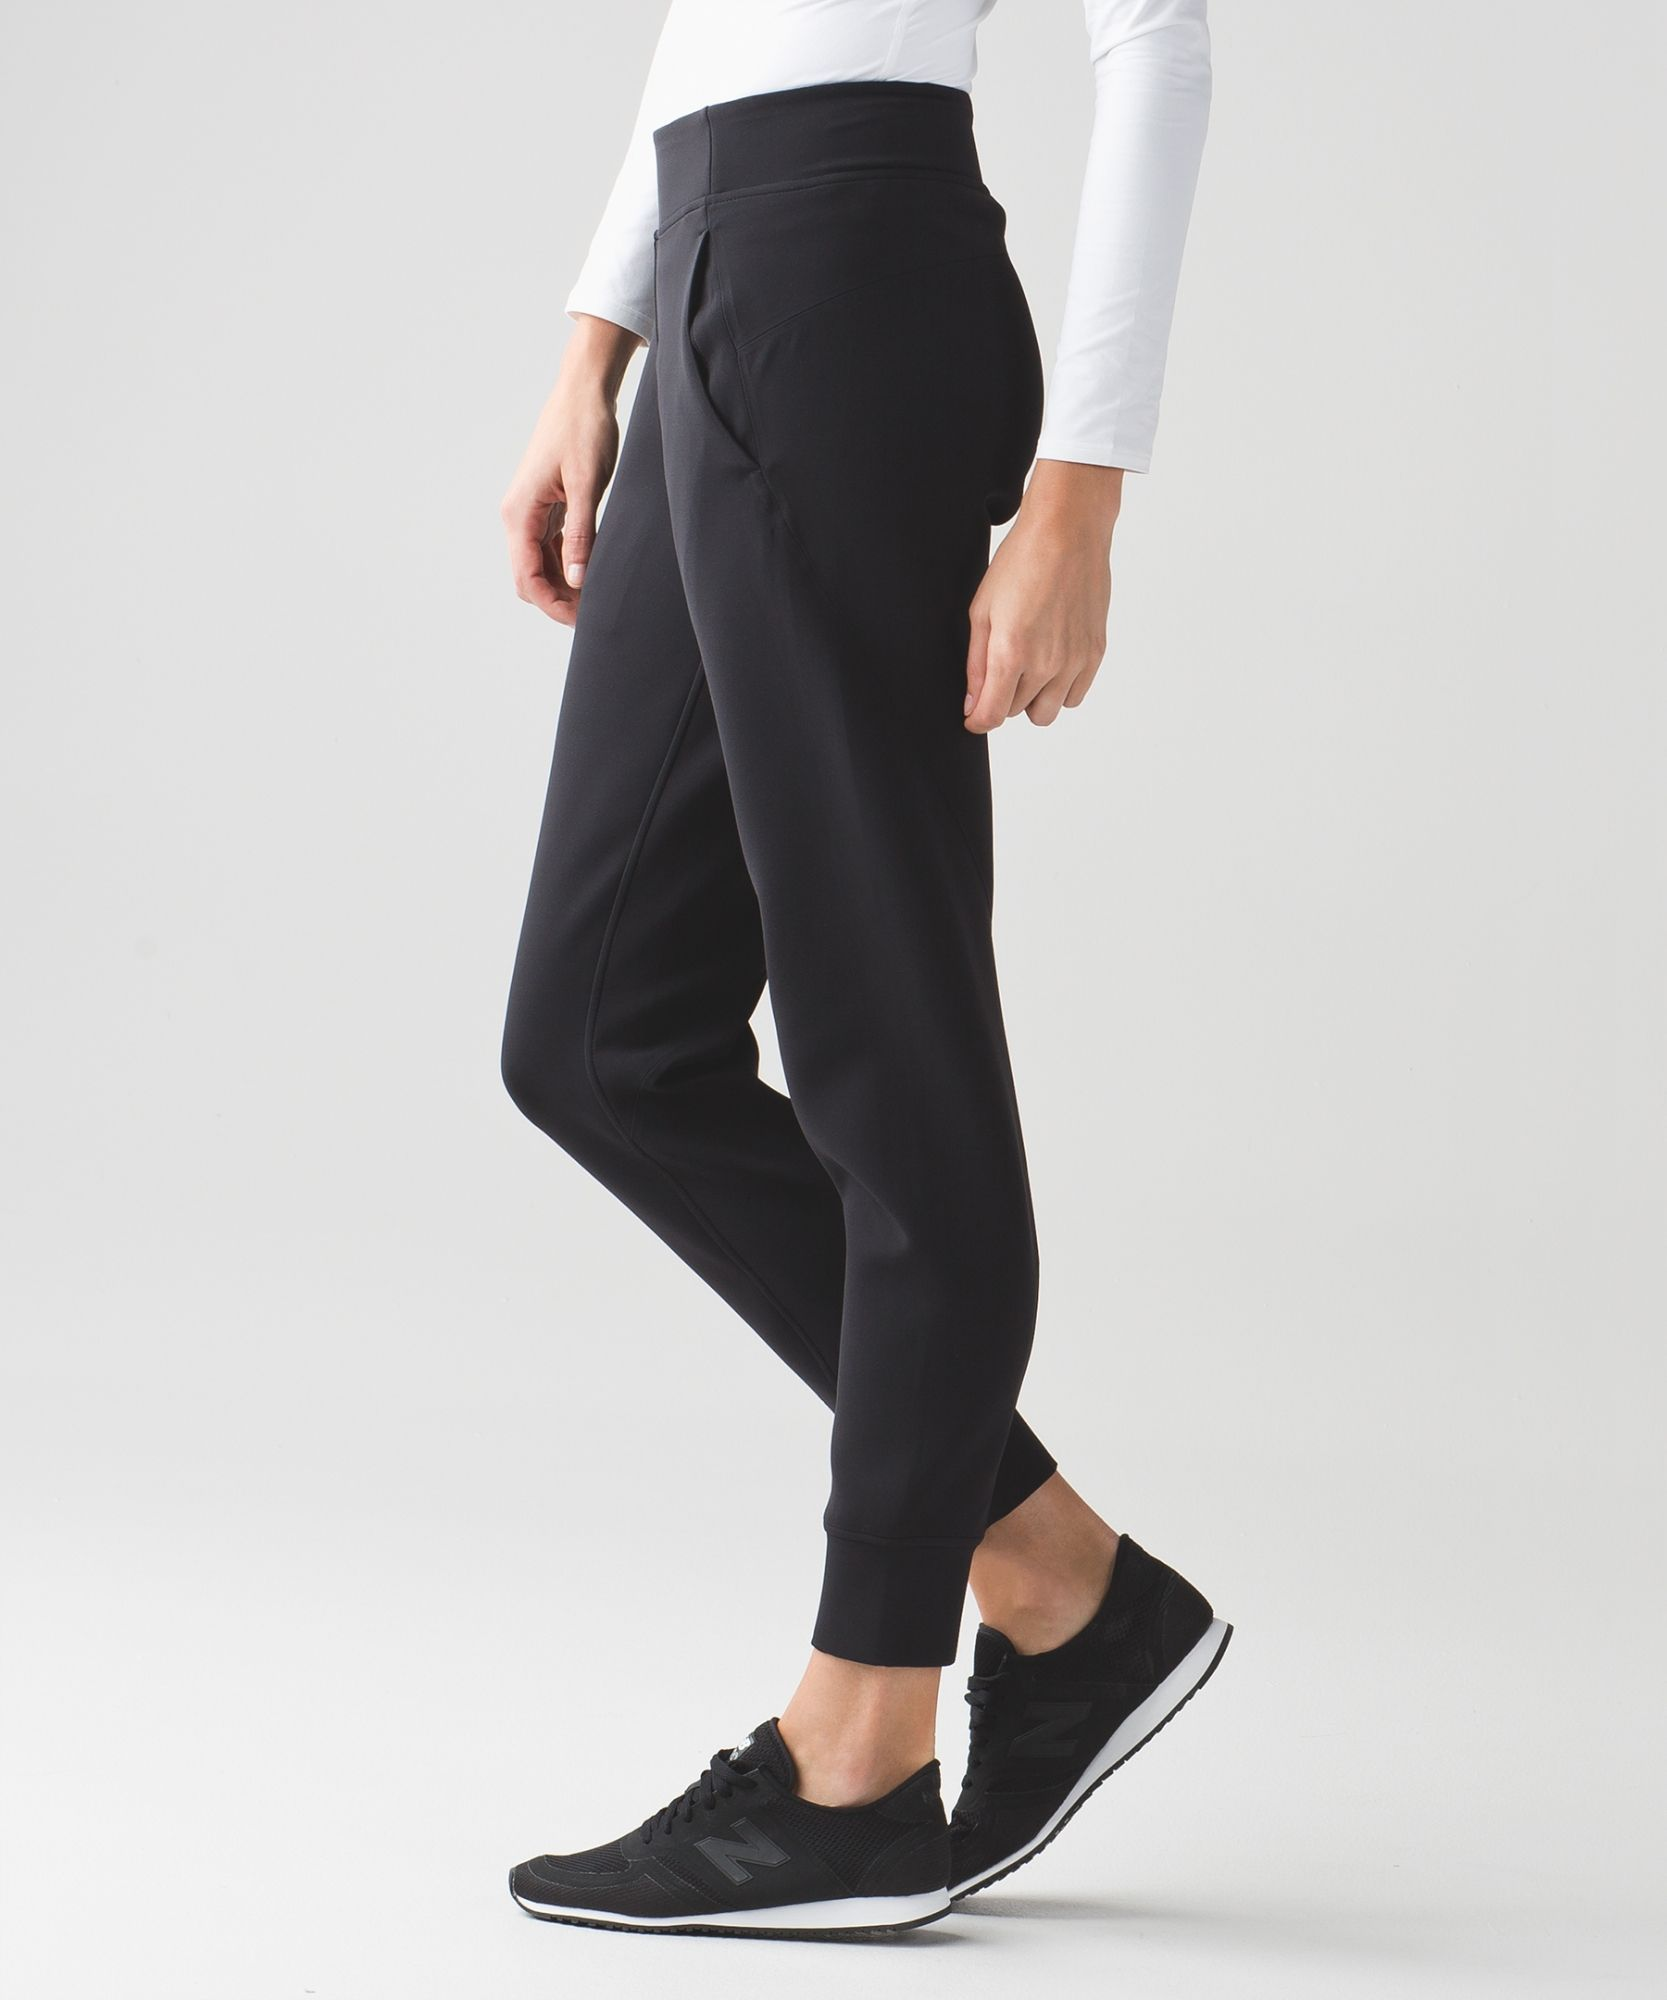 708937fe505e2 These pants pack sweat-wicking